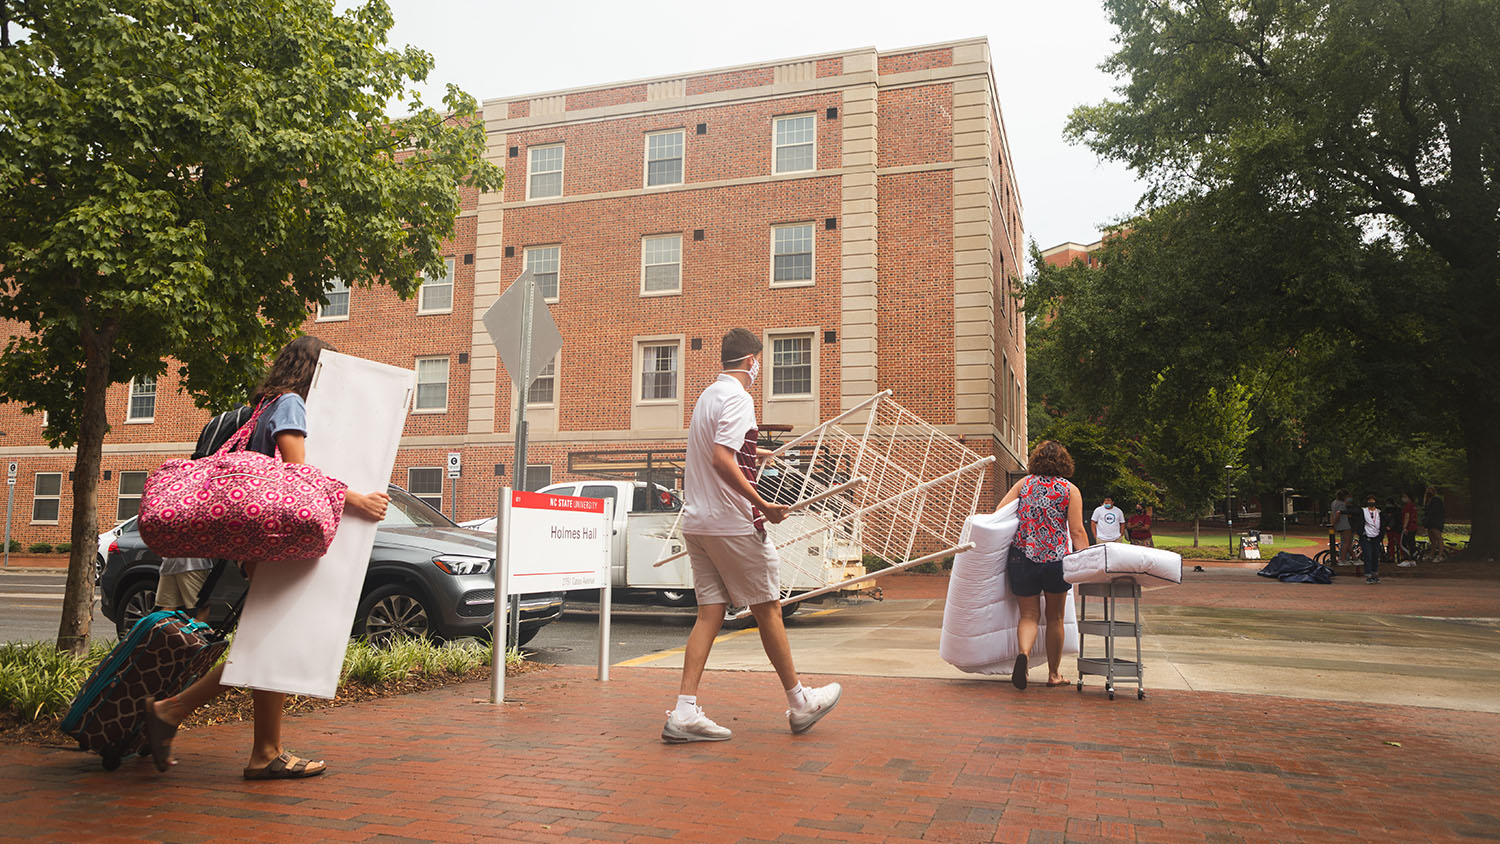 A new student carries luggage towards his residence hall